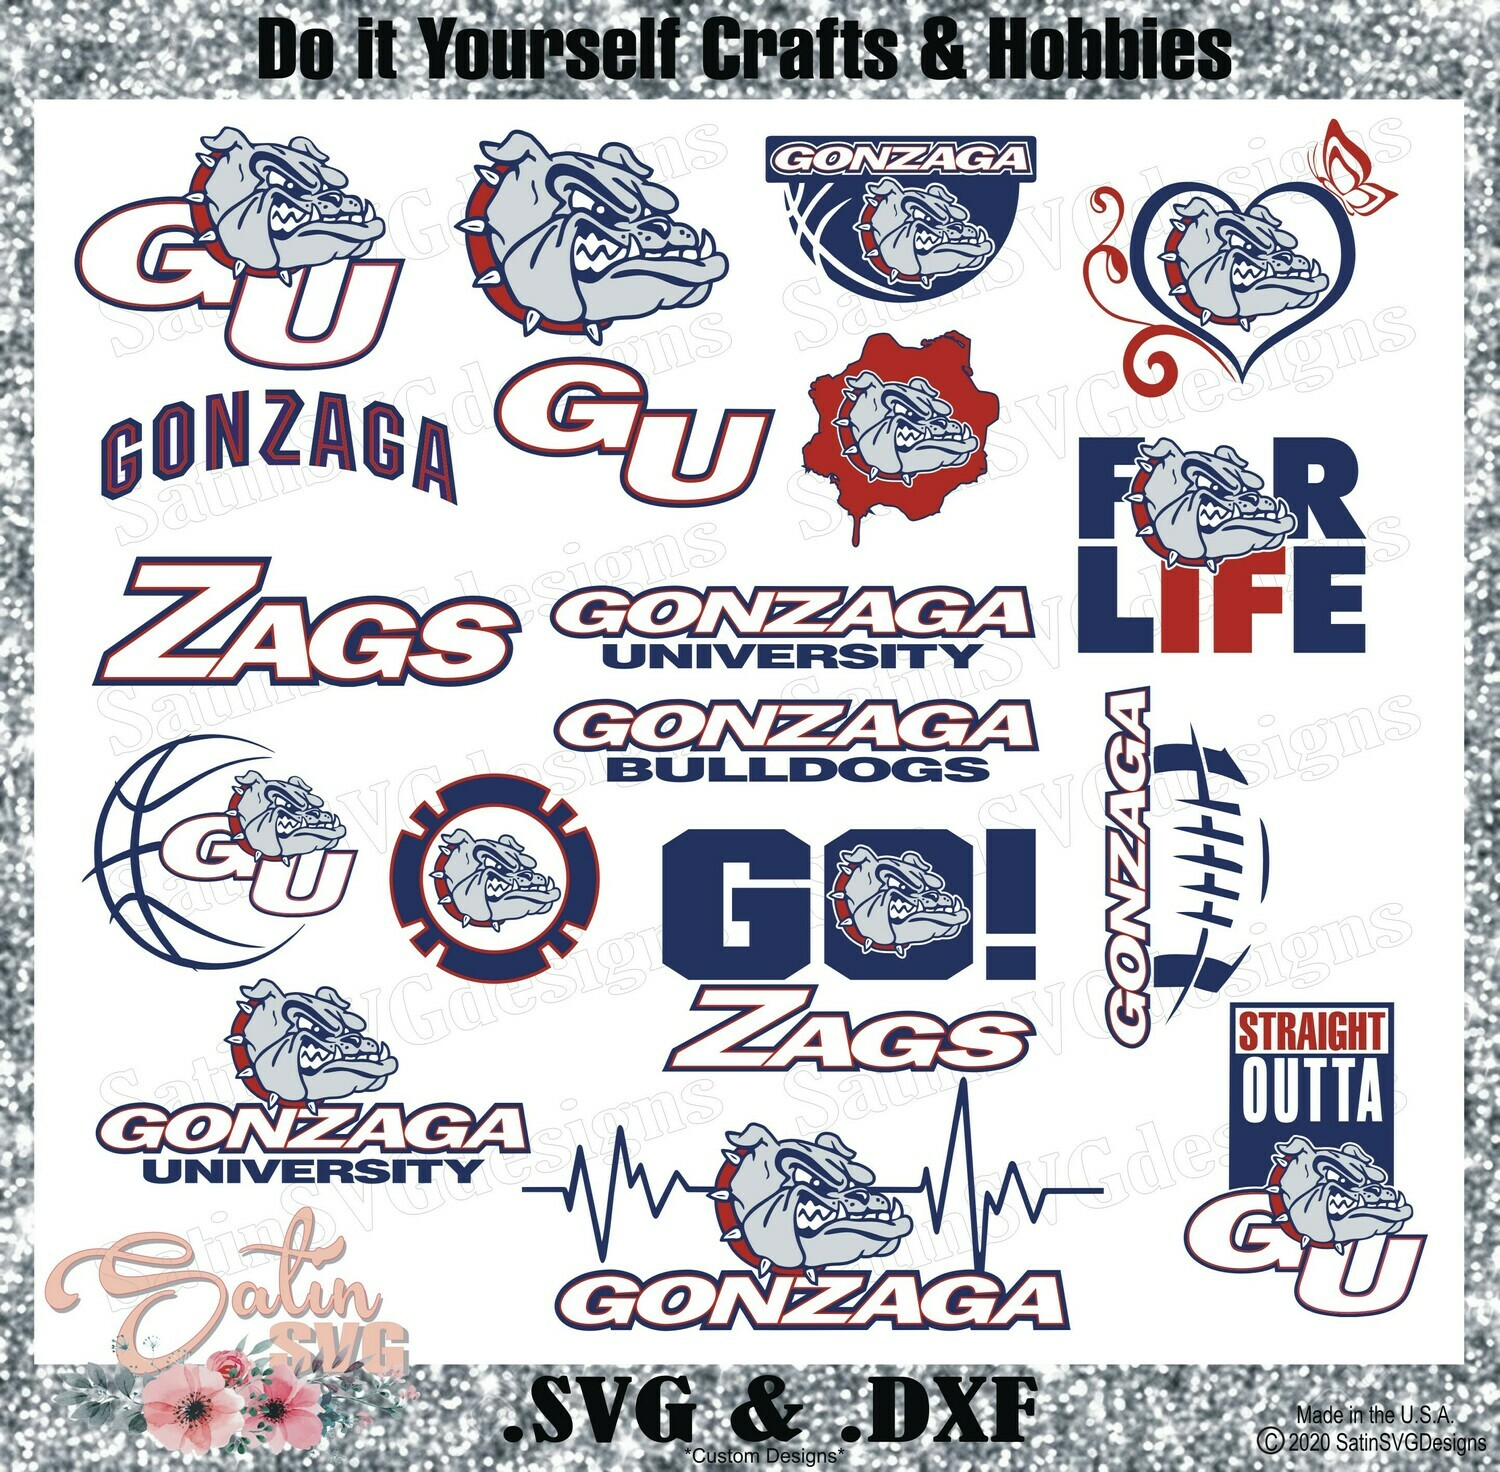 Gonzaga Bulldogs, Gonzaga University NEW Custom Zags Designs. SVG Files, Cricut, Silhouette Studio, Digital Cut Files, Infusible Ink